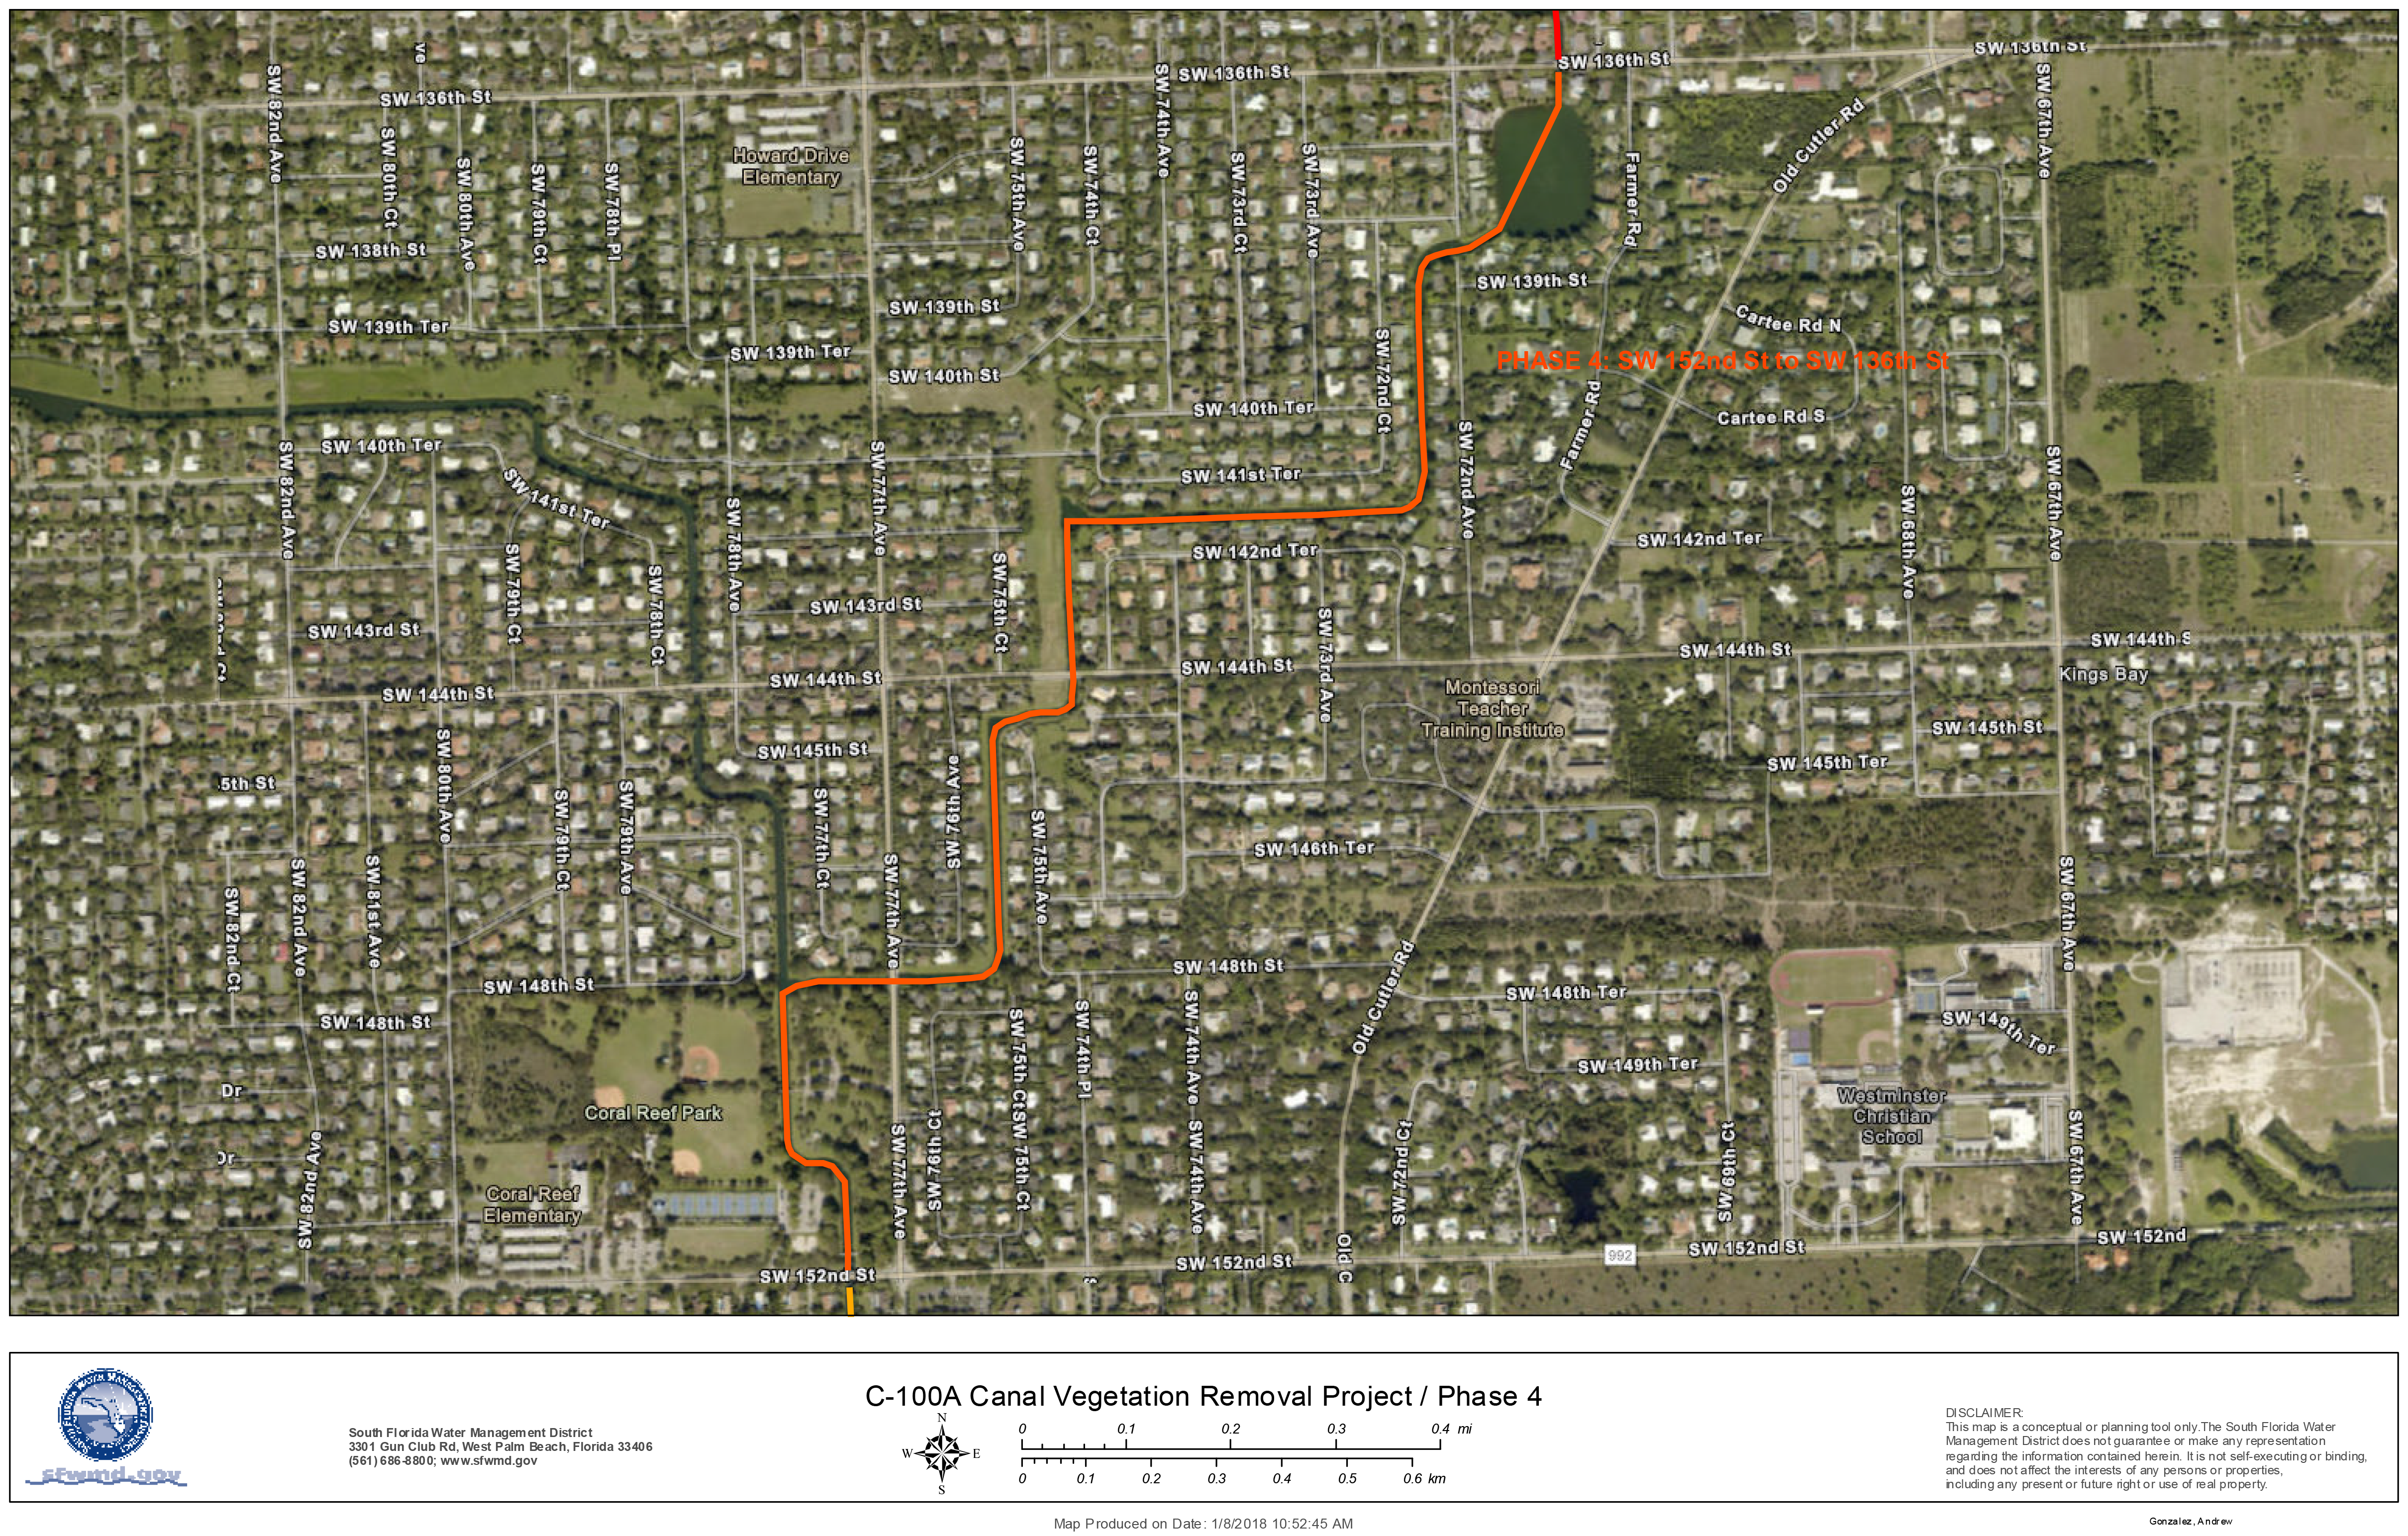 MAP: C-100A Canal Vegetation Removal Project - Phase 4